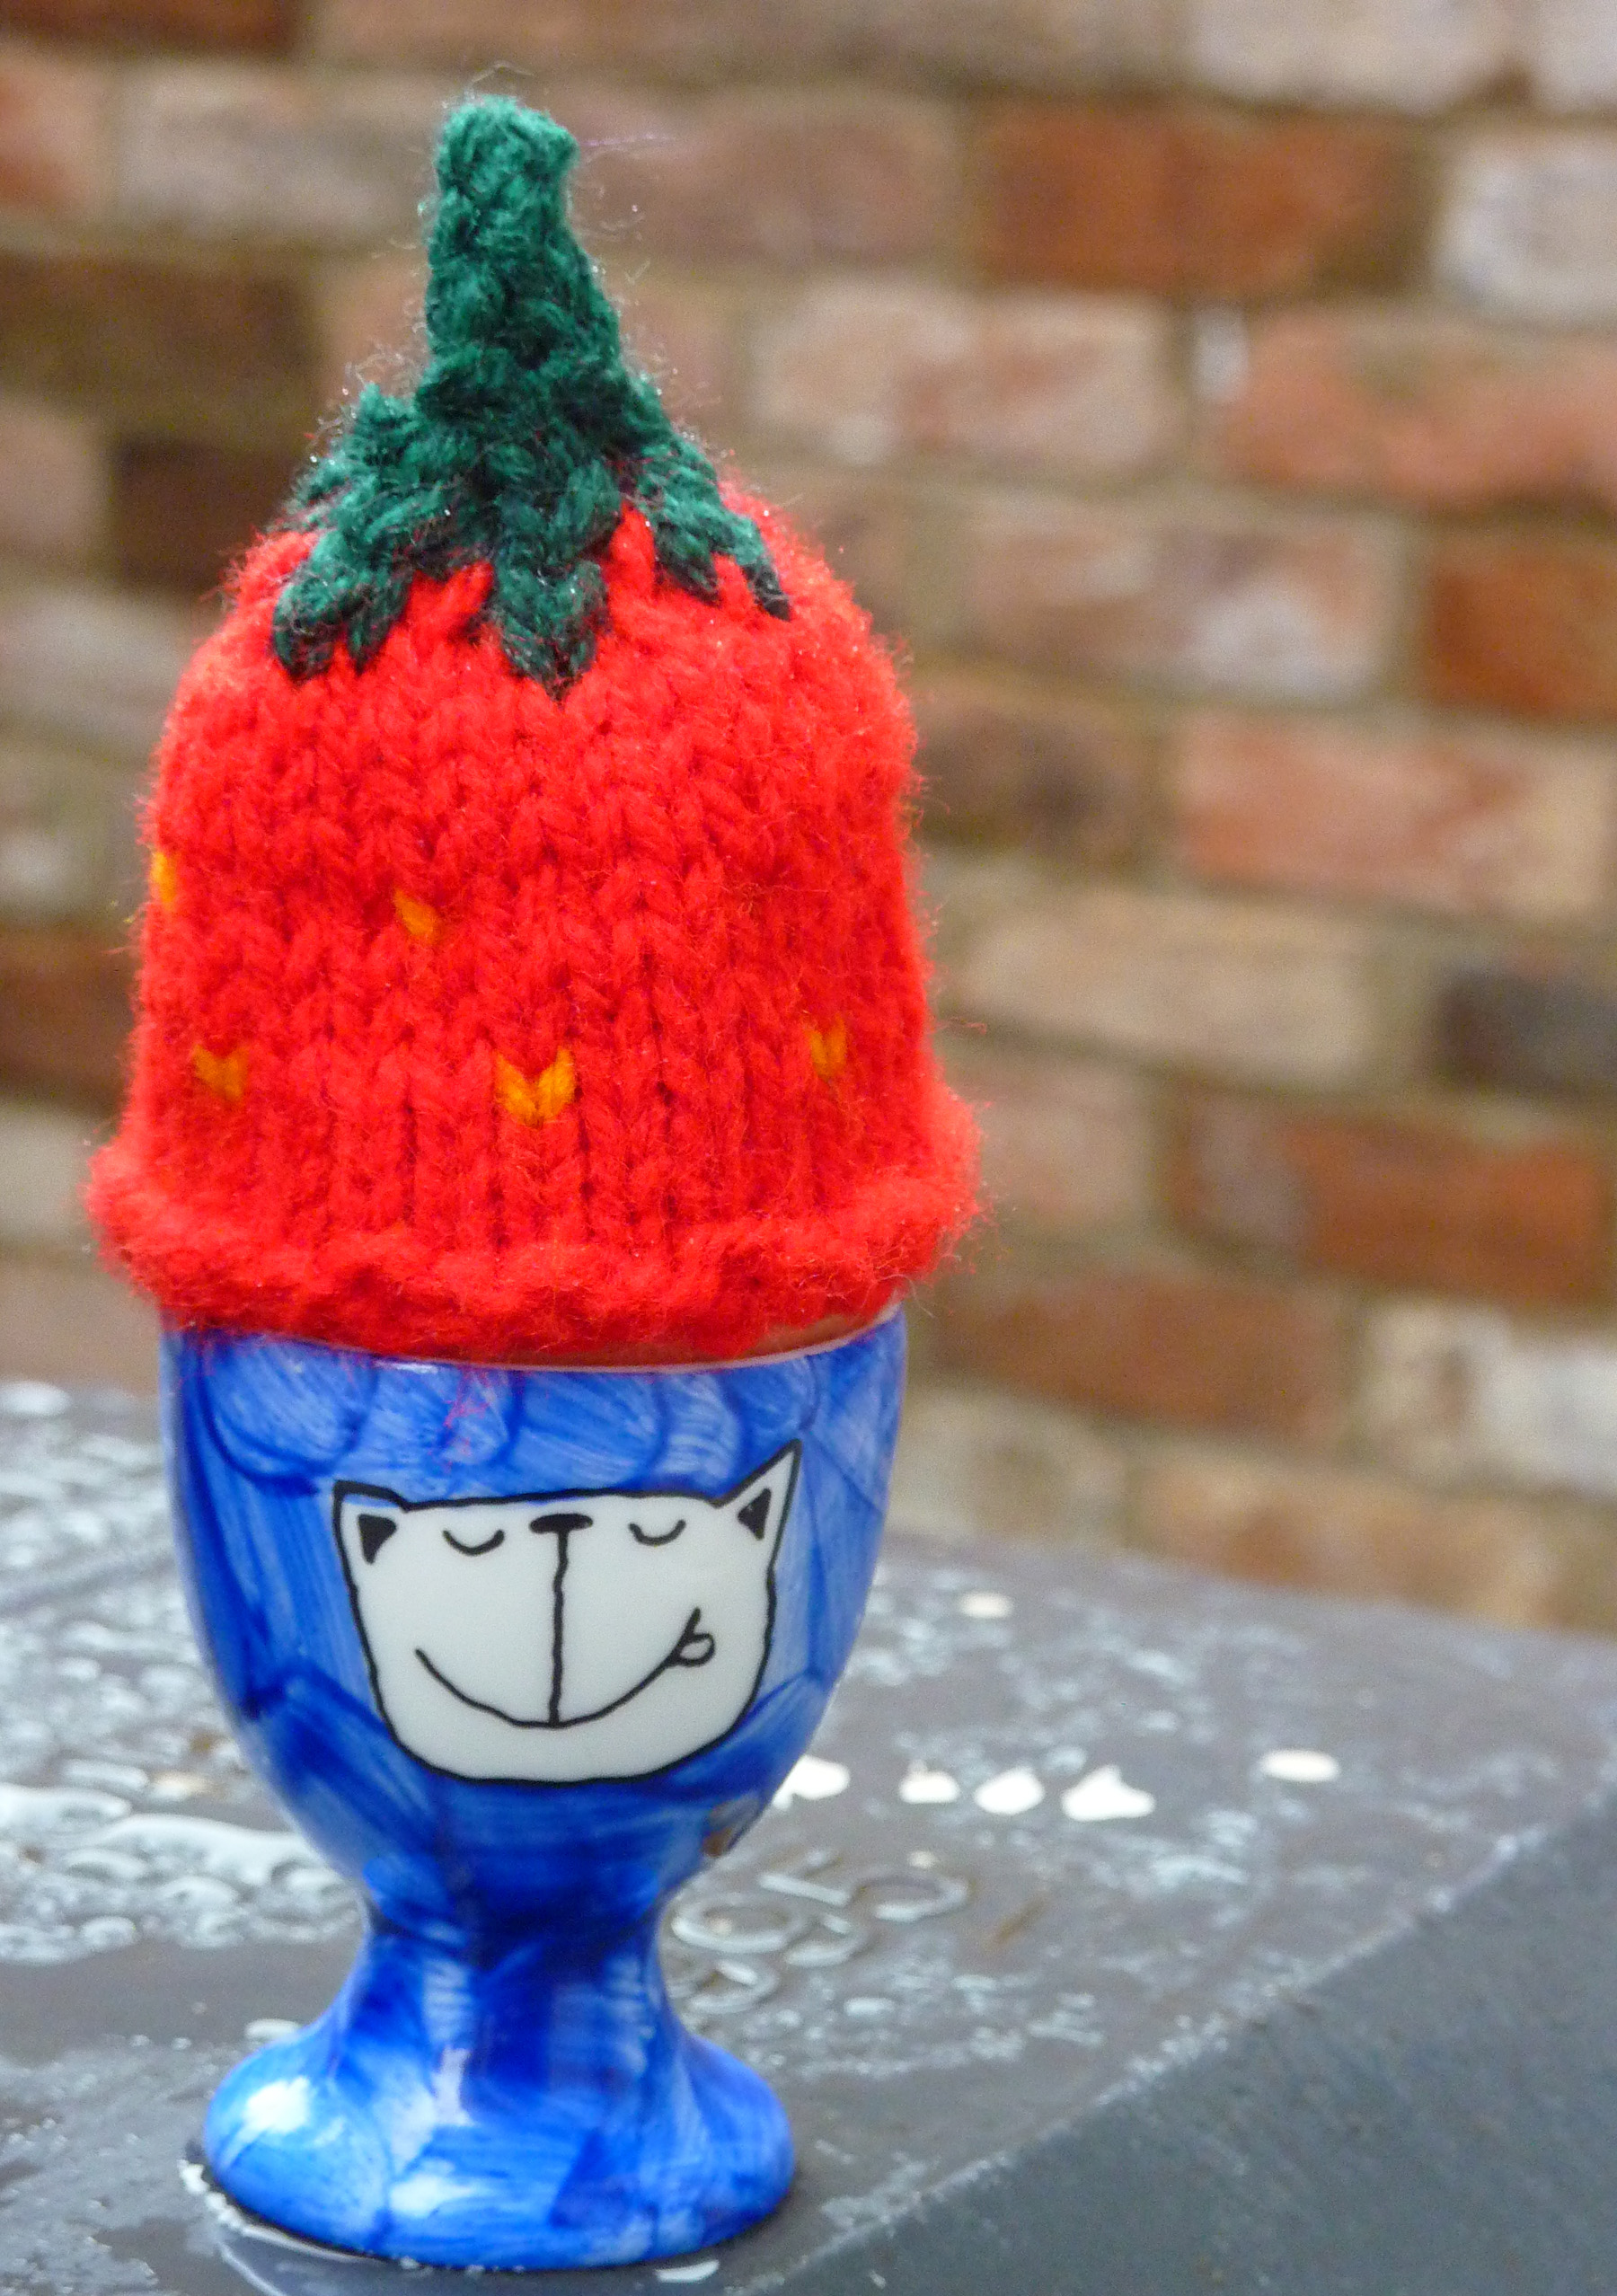 Big Knit - strawberry hat egg cosy